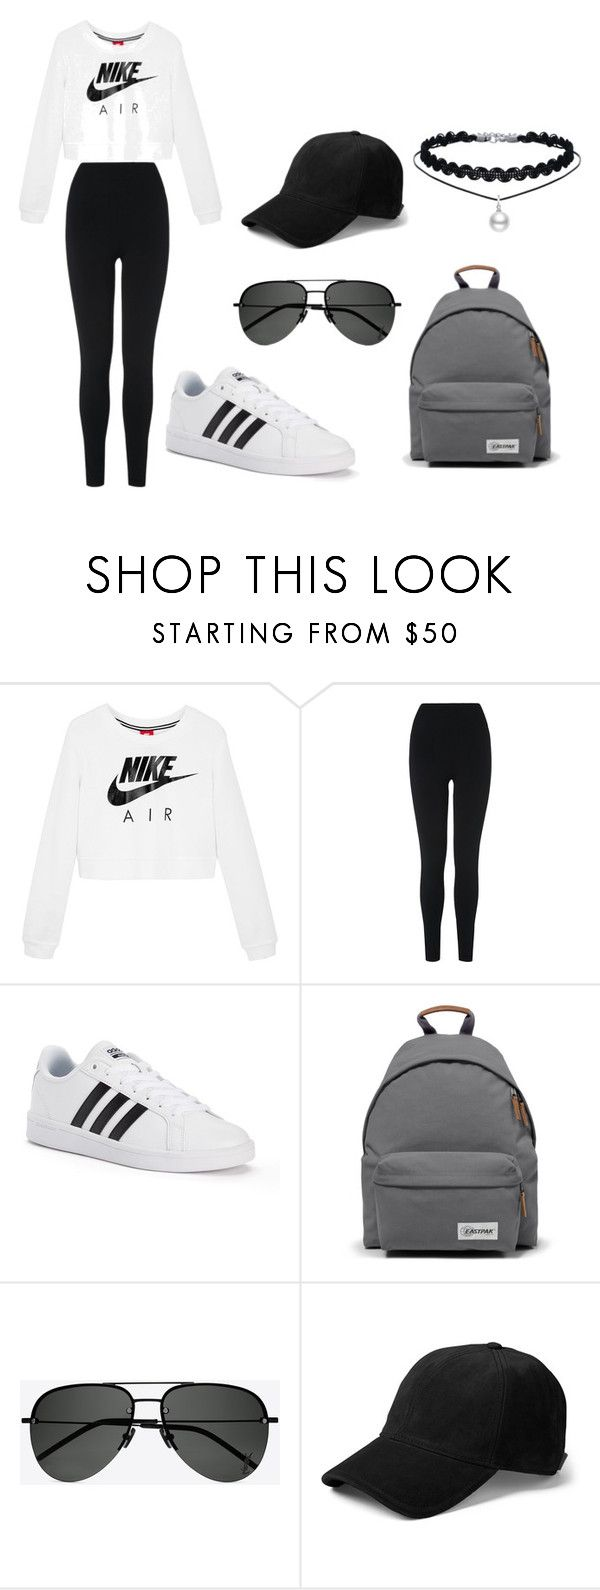 """j"" by cipherlyfe on Polyvore featuring NIKE, L.K.Bennett, adidas, Eastpak, Yves Saint Laurent and rag & bone"